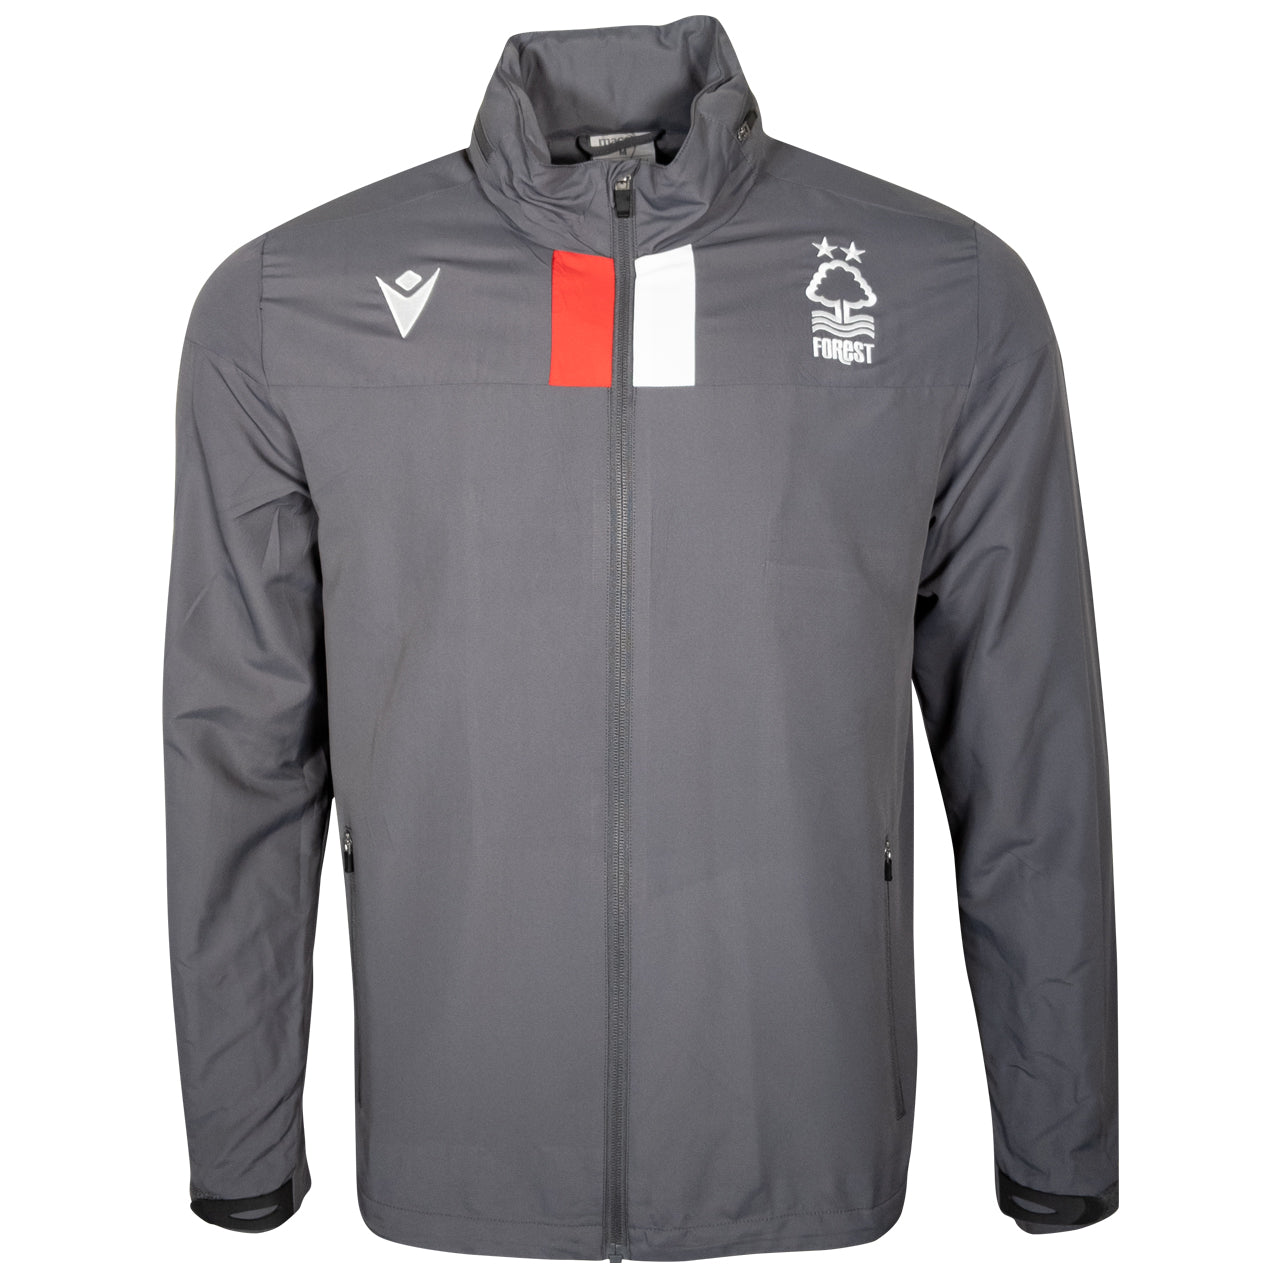 NFFC Junior Grey Staff Training Shower Jacket 19/20